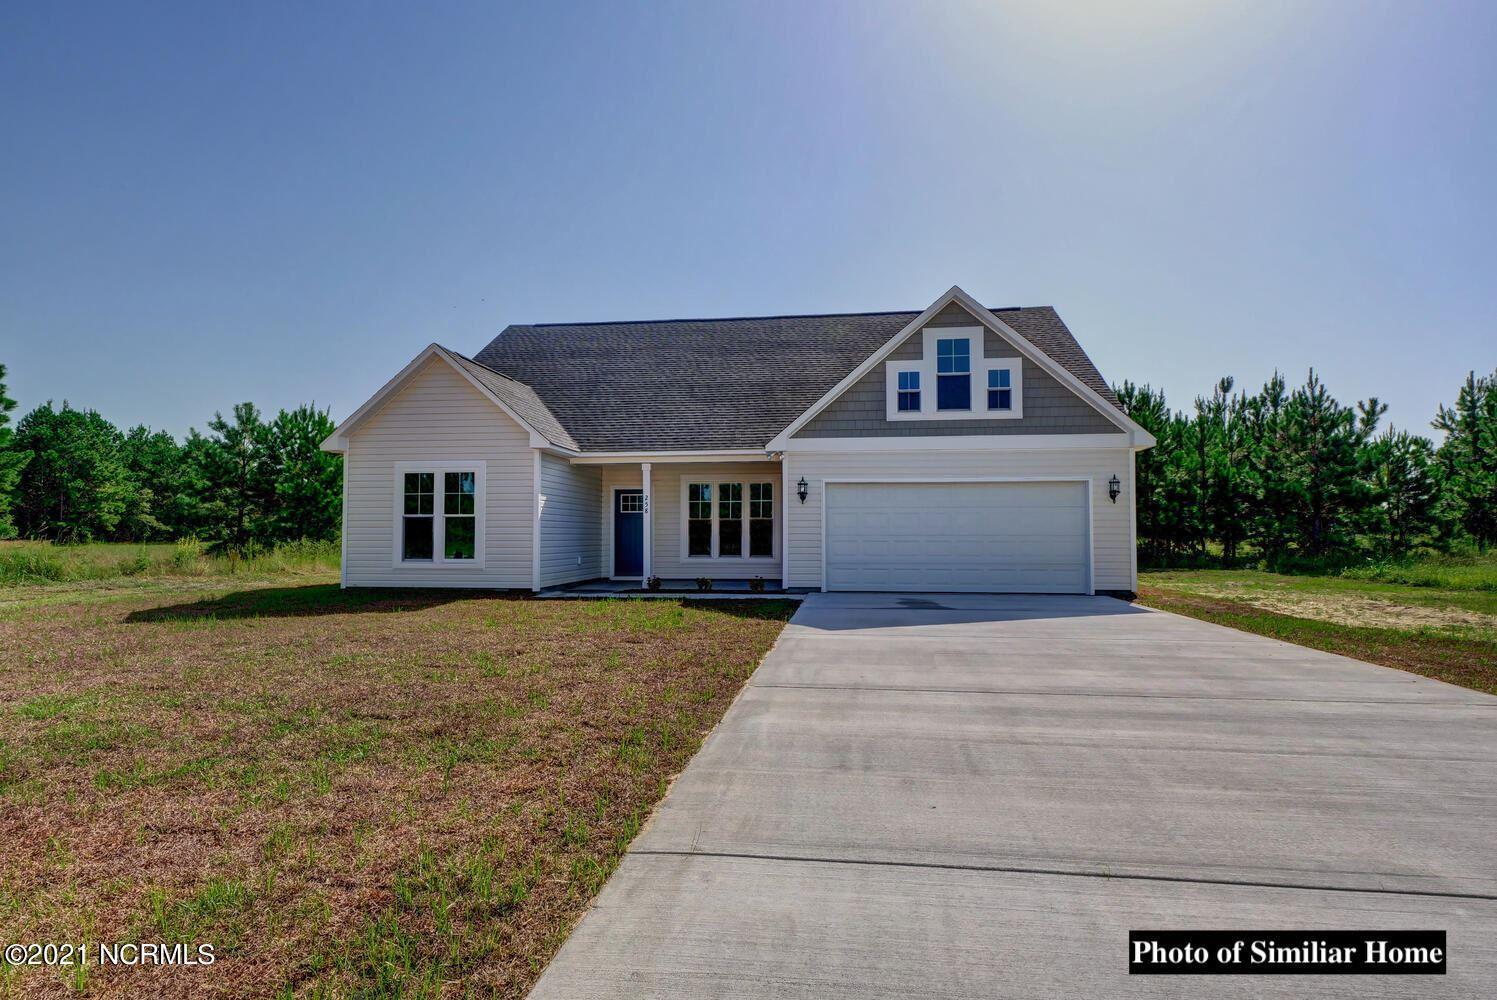 Photo of Lot 3 Vineyard Trace, Currie, NC 28435 (MLS # 100292114)